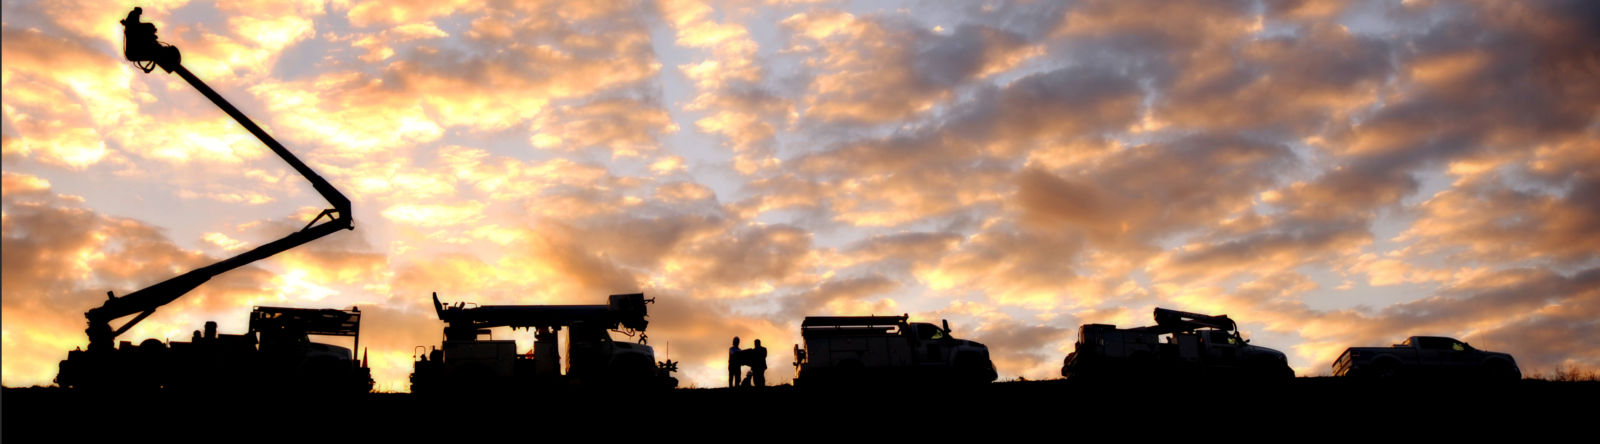 Trucks at sunset